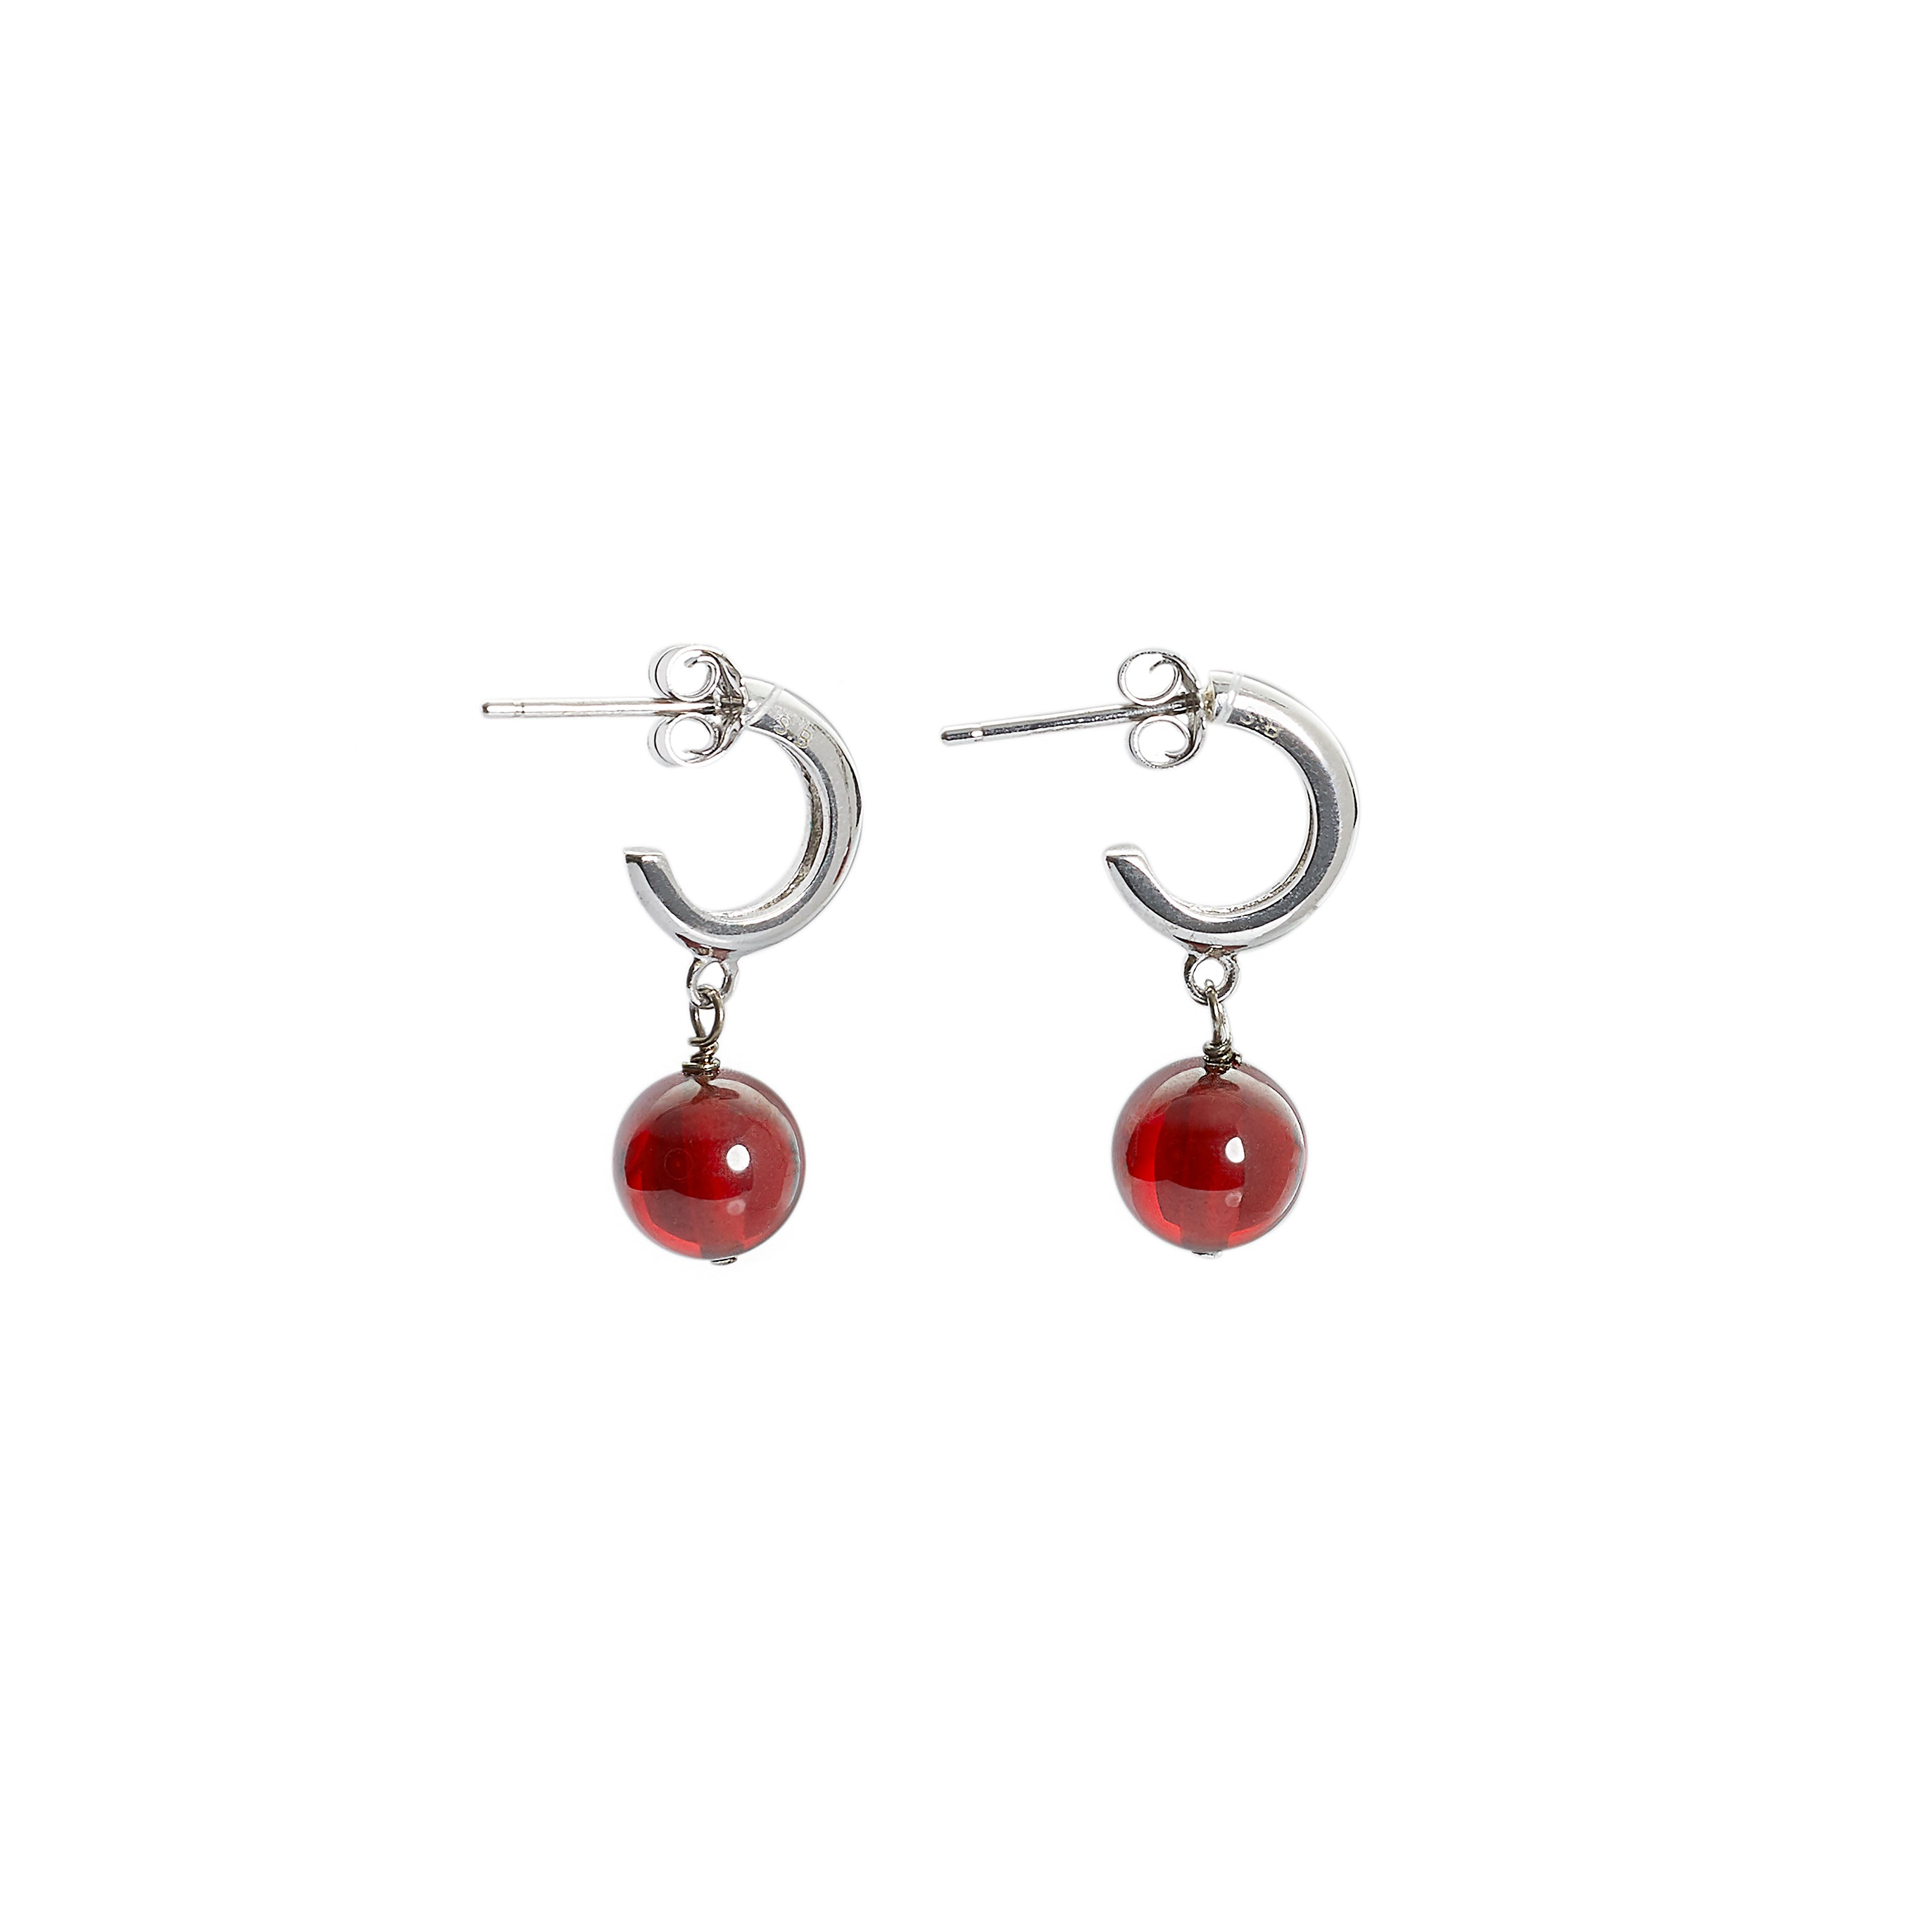 Vitamin C Berry Earring - Swedish Berries